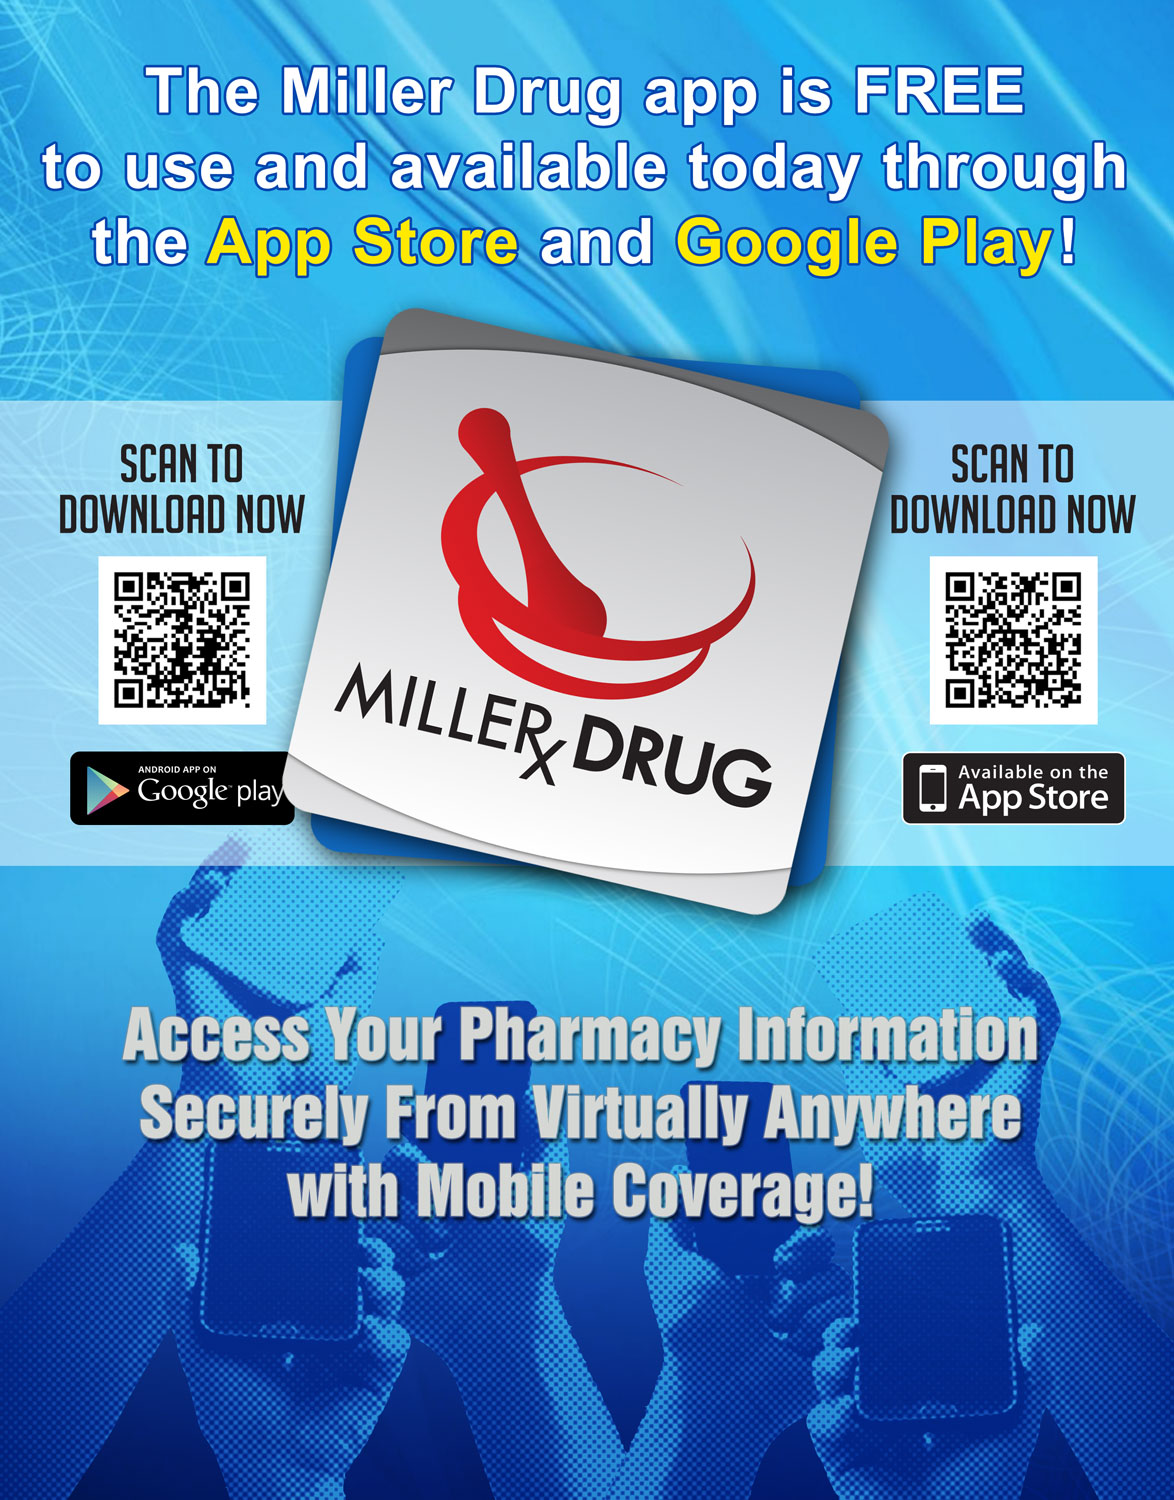 Pharmacy marketing materials including posters, bag stuffers, patient intake forms, and display ads.